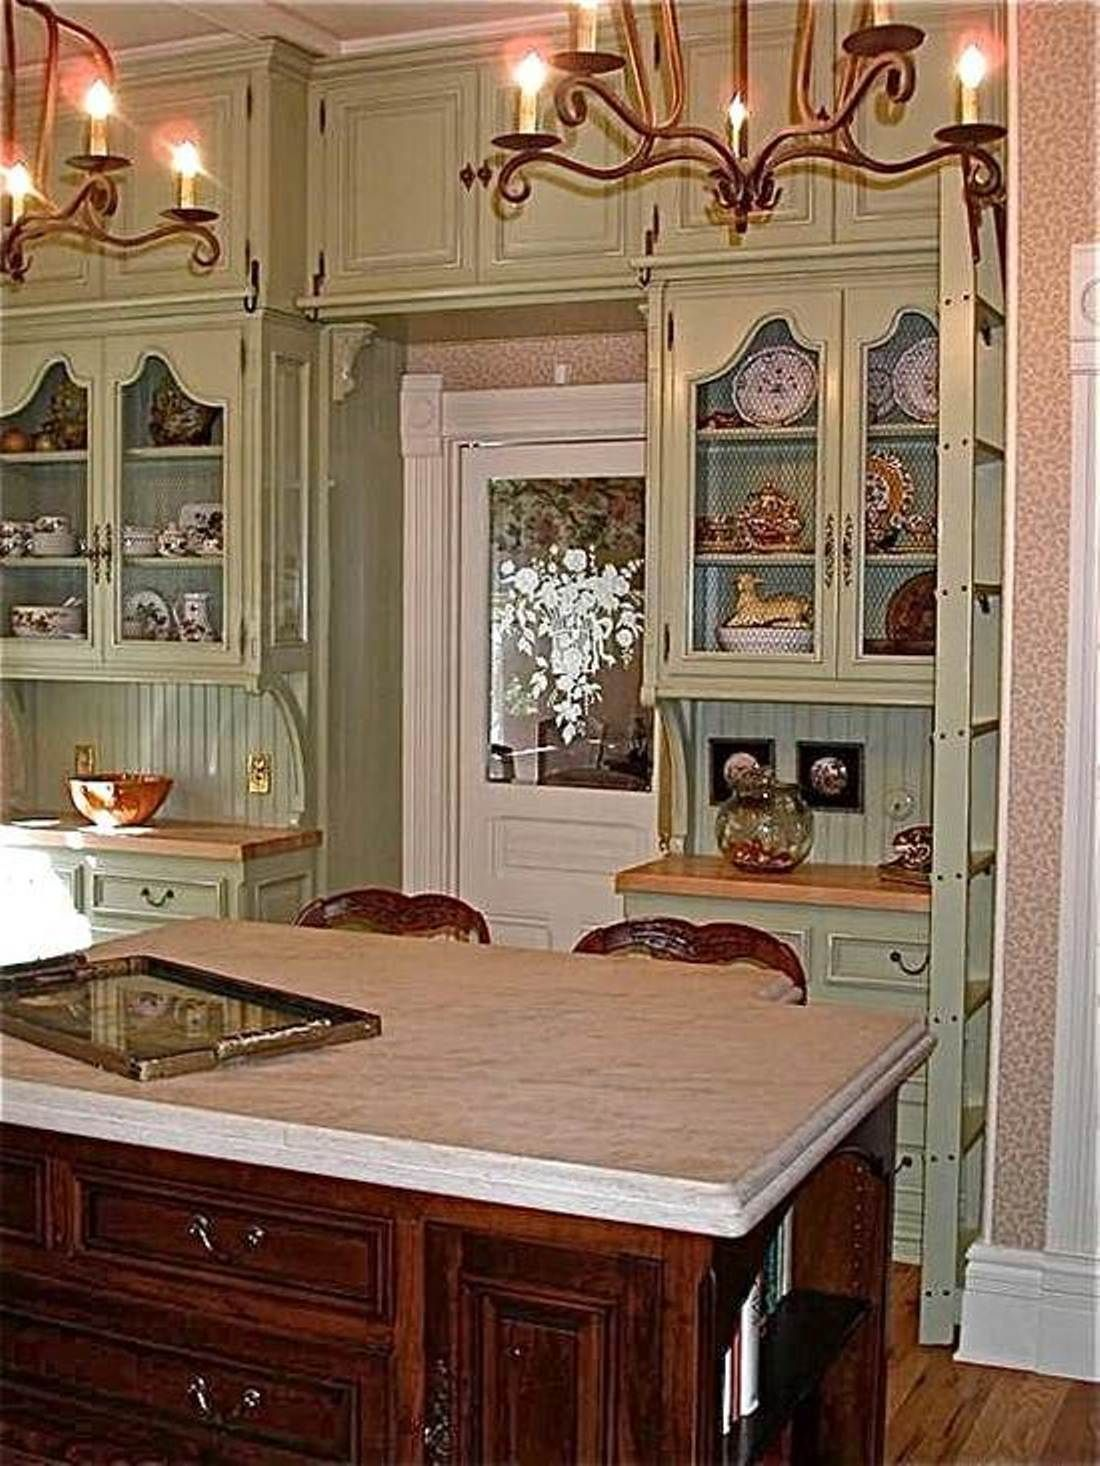 Nice Victorian Style Kitchen My 1920 39 S Home Pinterest Upper Cabinets Victorian And Beads